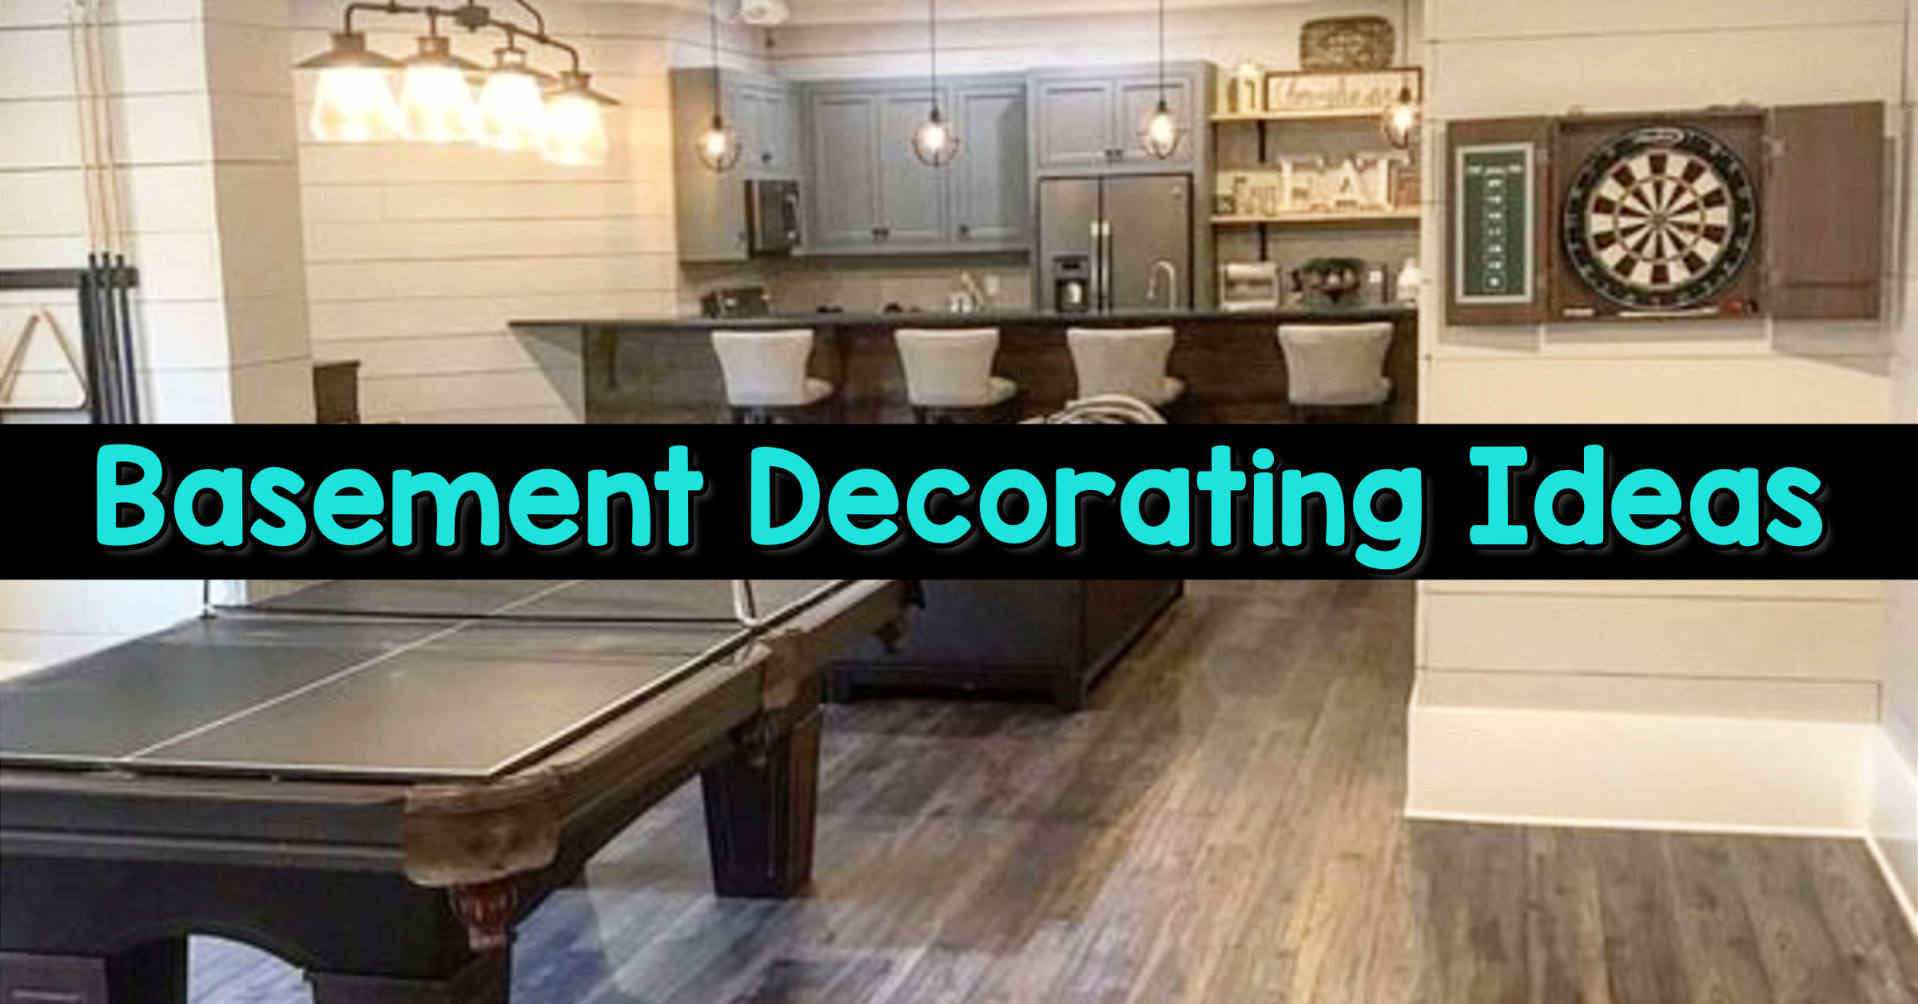 Basement Ideas! Gorgeous DIY finished basement ideas on a budget - partially finished basement ideas and small basement decor ideas for finishing and decorating a basement on a budget